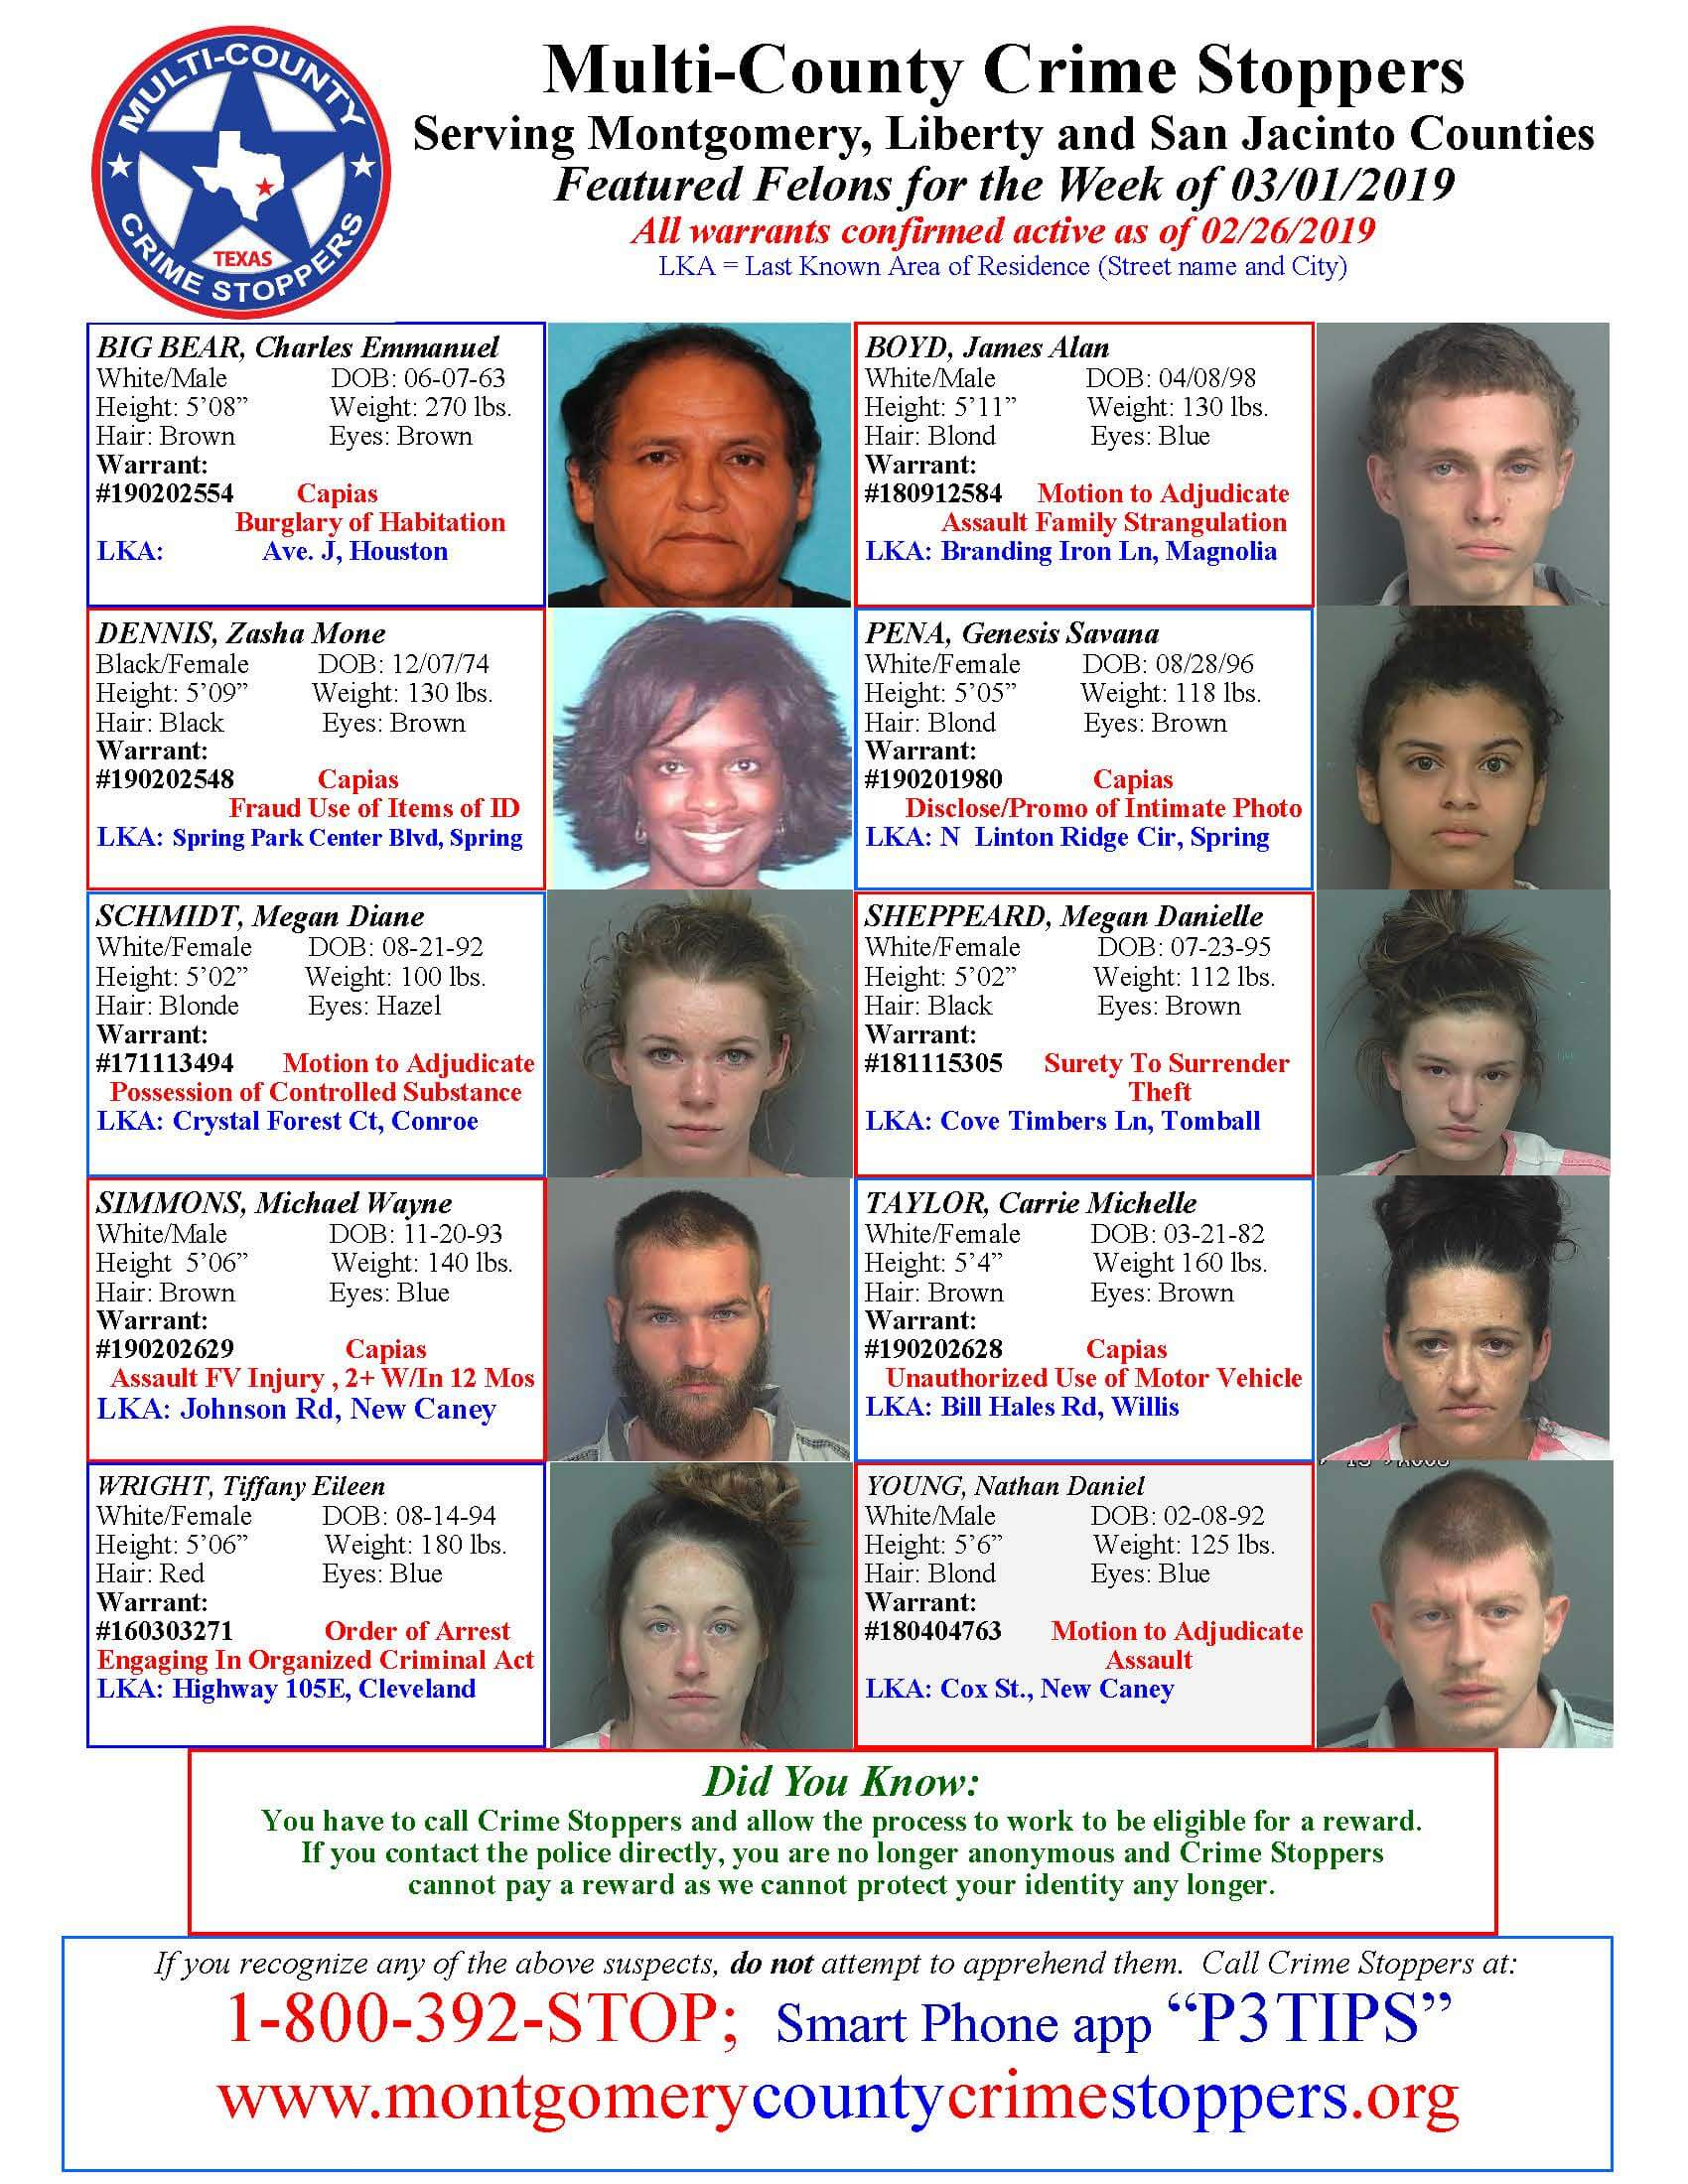 CRIME STOPPERS FEATURED FELONS 03.01.19